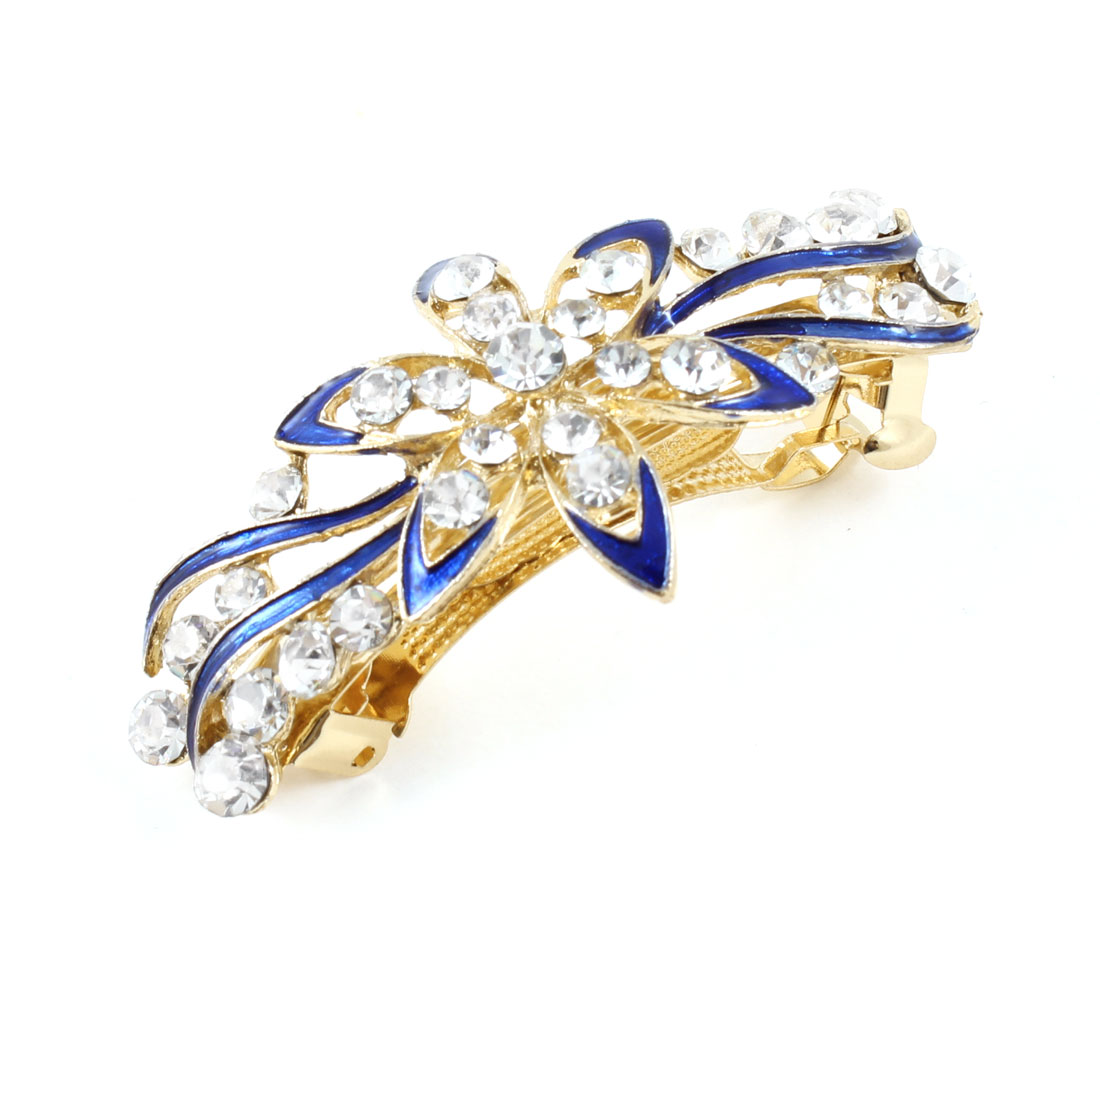 Woman Girl Blue Flower Faux Shiny Rhinestone Decor Barrette French Hair Clip